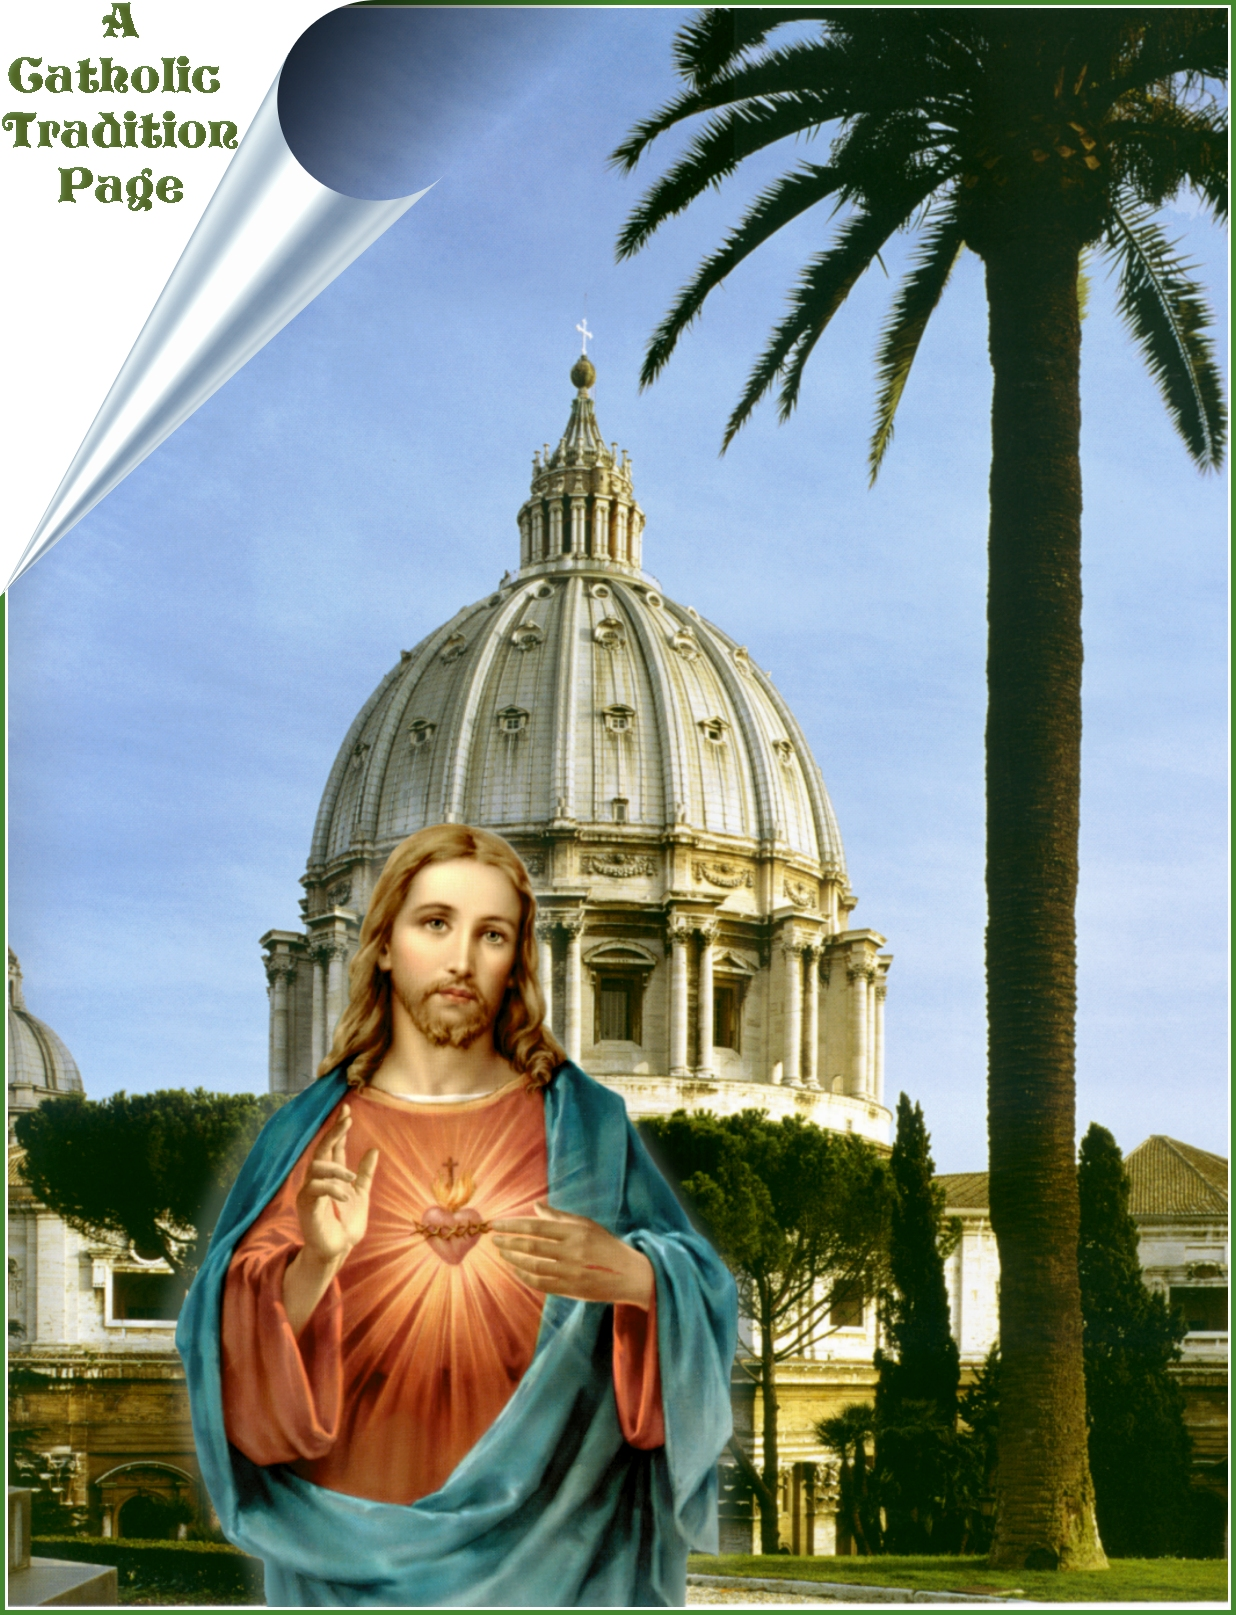 roman catholic essay My visit to a catholic church essaysmy visit to a roman catholic church growing up, my family never practiced any religion my parents educated me on what religion was and why certain people.